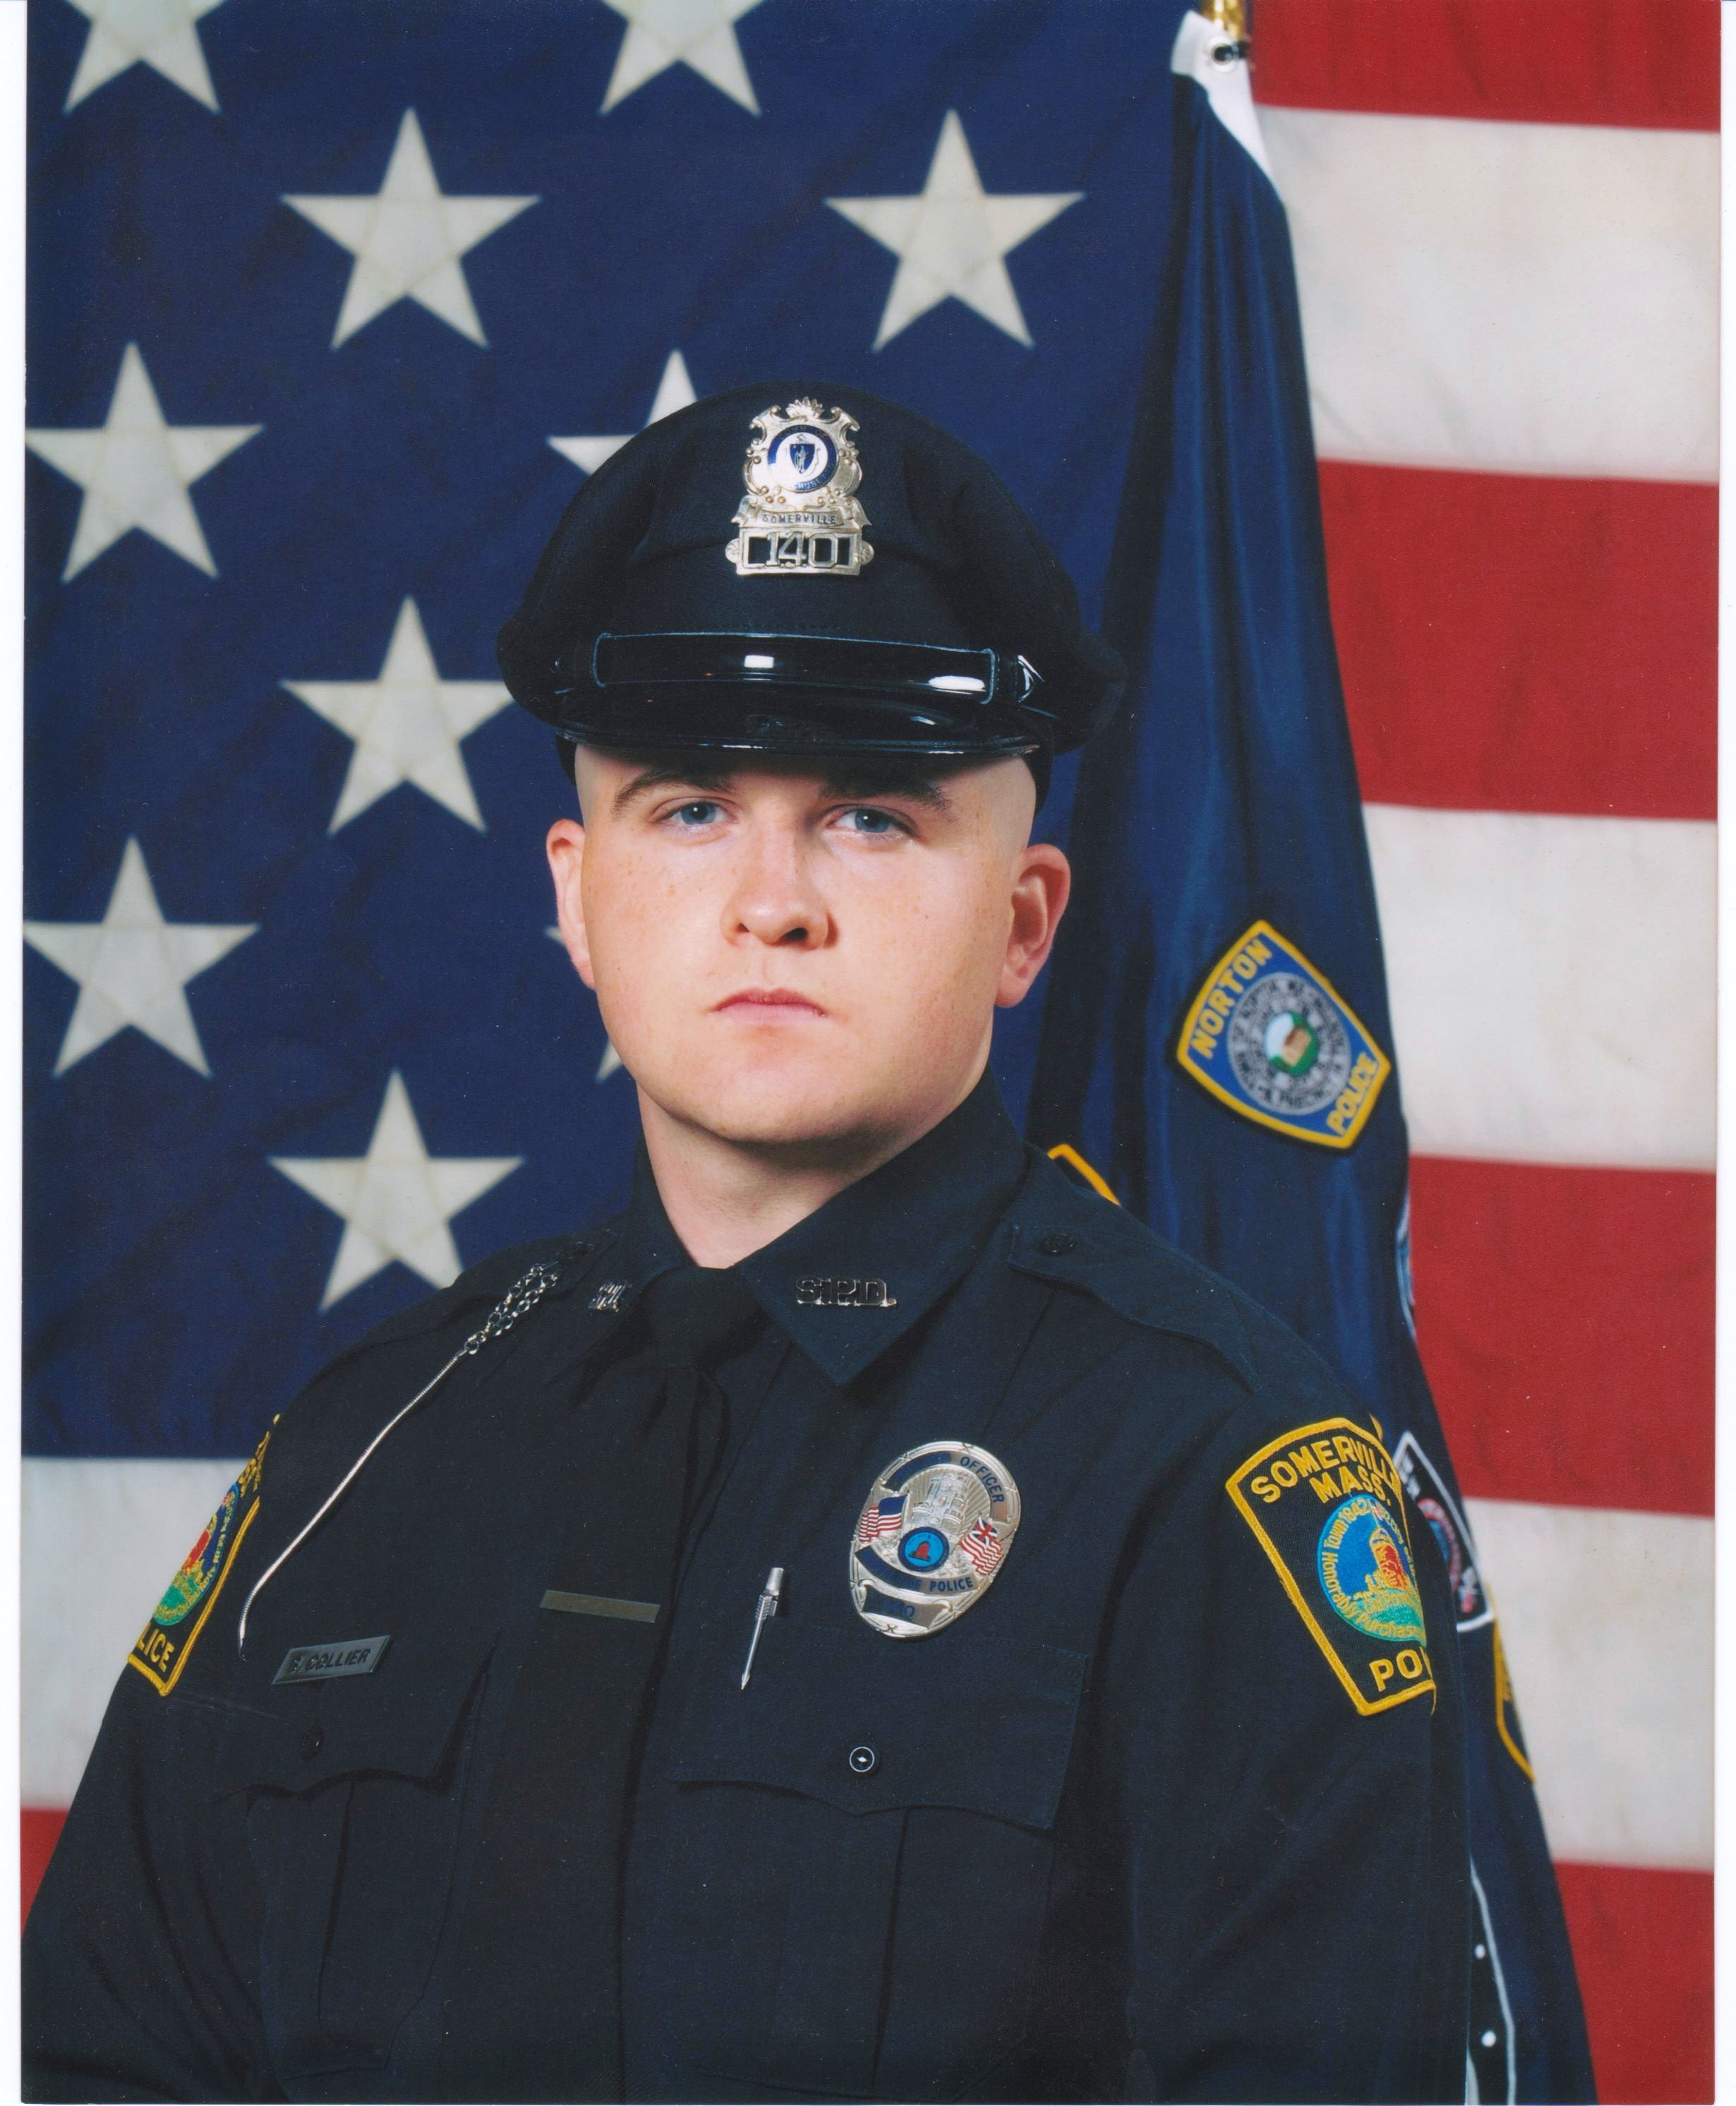 Officer Sean A. Collier Memorial Fund, Inc.